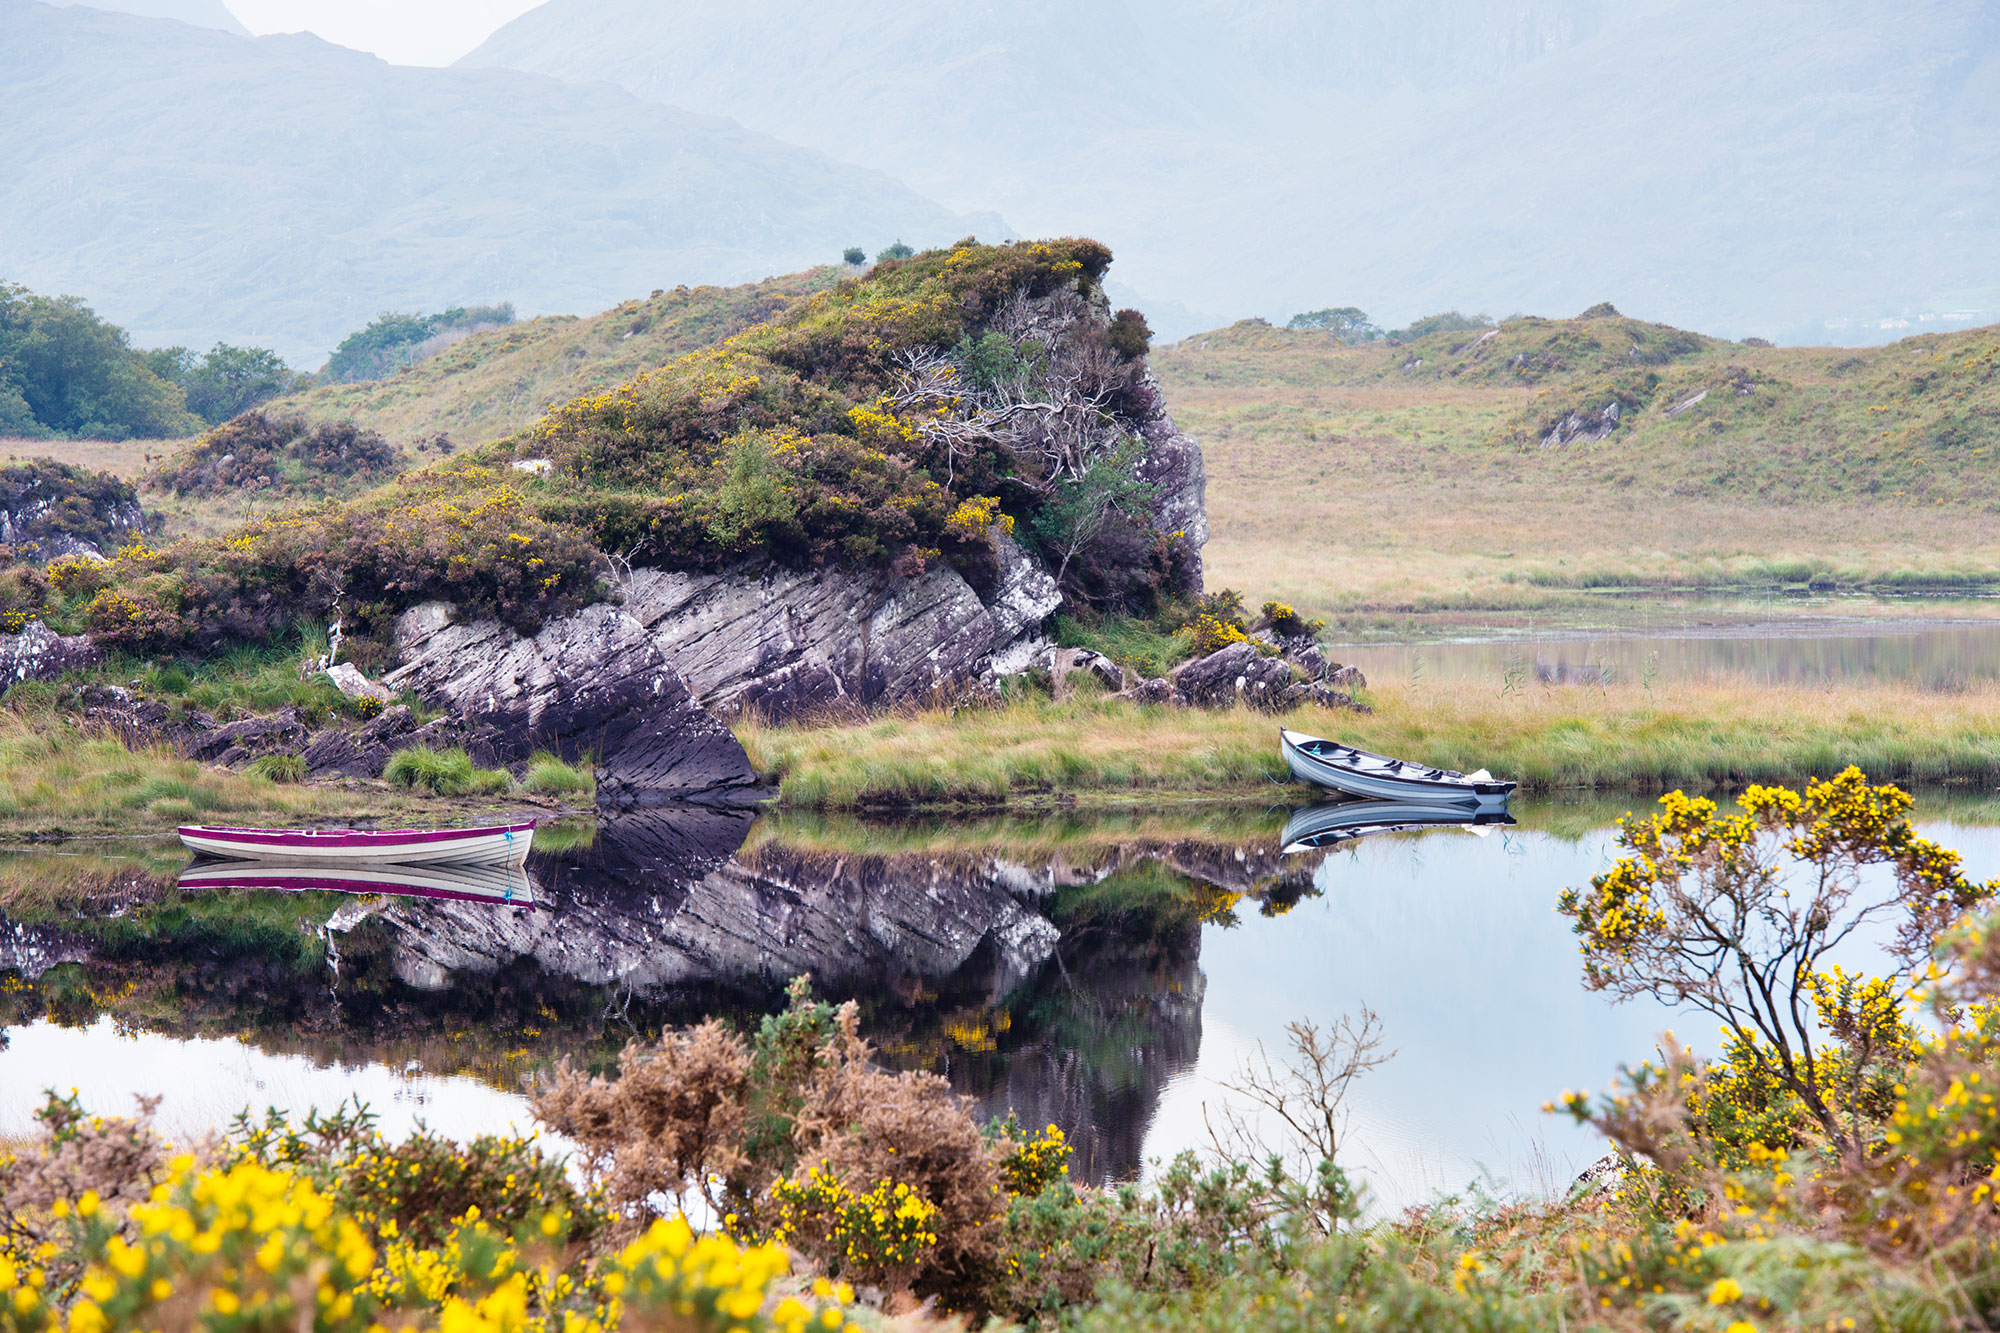 Rugged landscape with boats moored on a lake in Killarney National Park in the south west of Ireland.